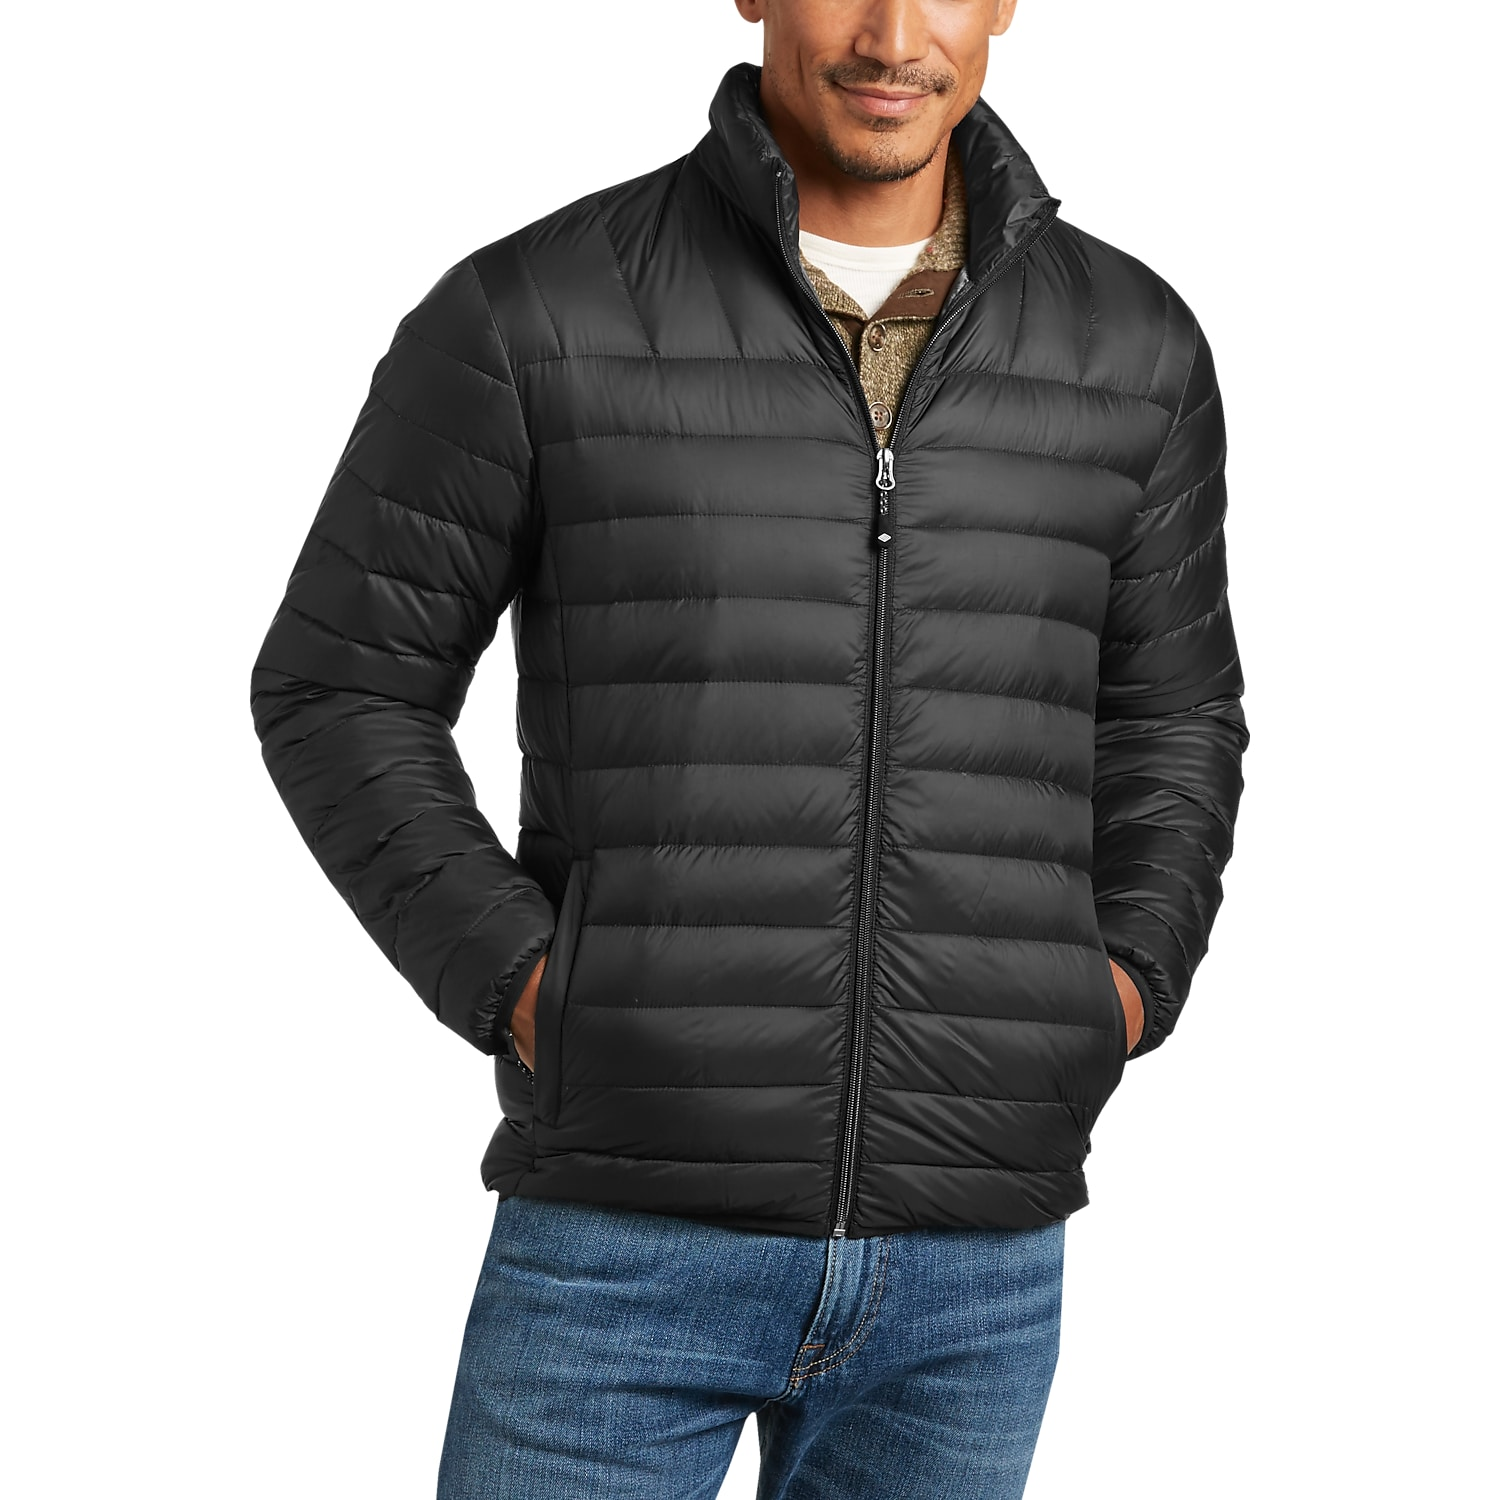 Joseph Abboud Black Modern Fit Packable Jacket - Men's Casual ...